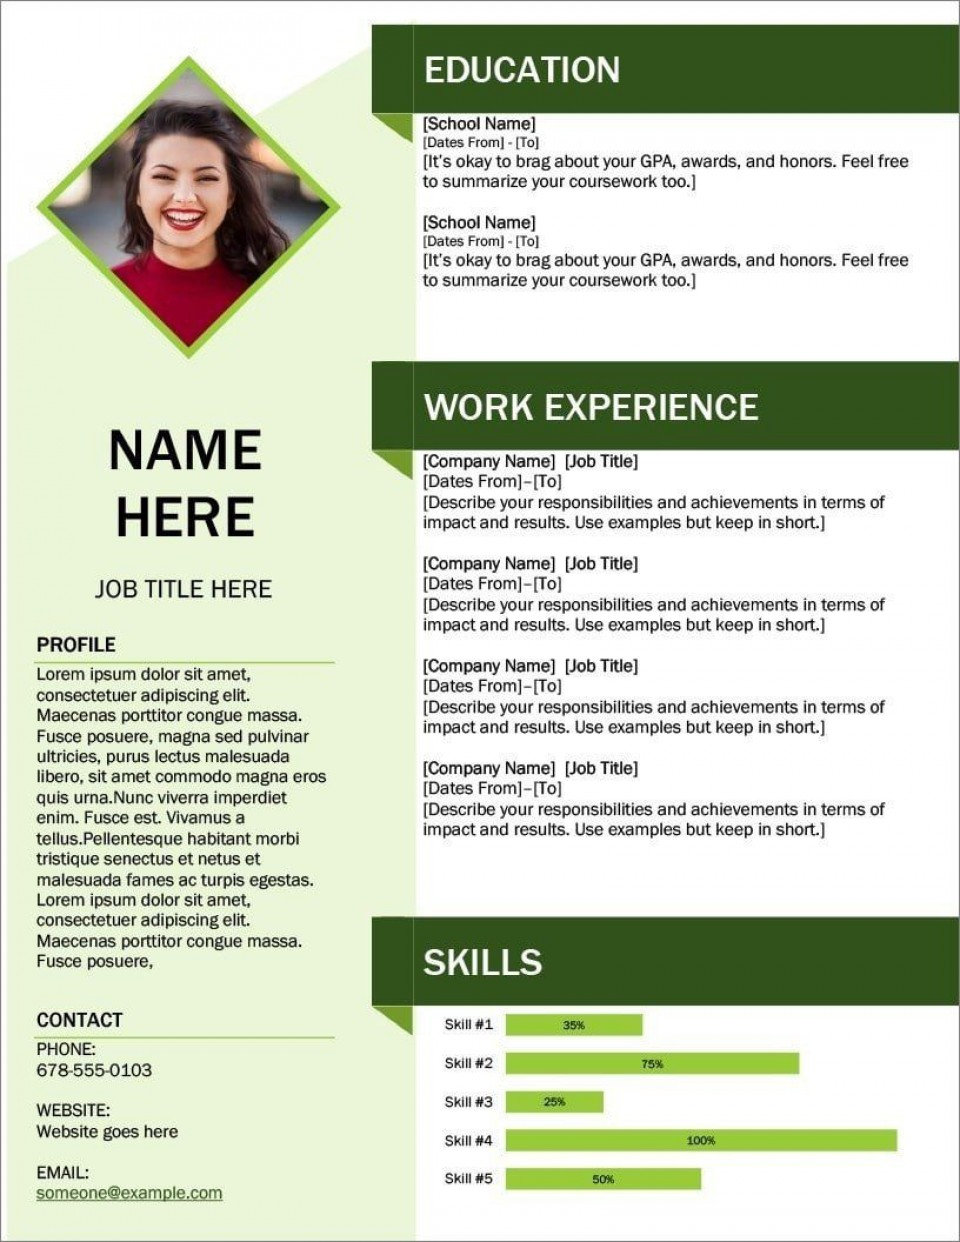 006 Stupendou Download Resume Template Microsoft Word Inspiration  Free 2007 2010 Creative For Fresher960